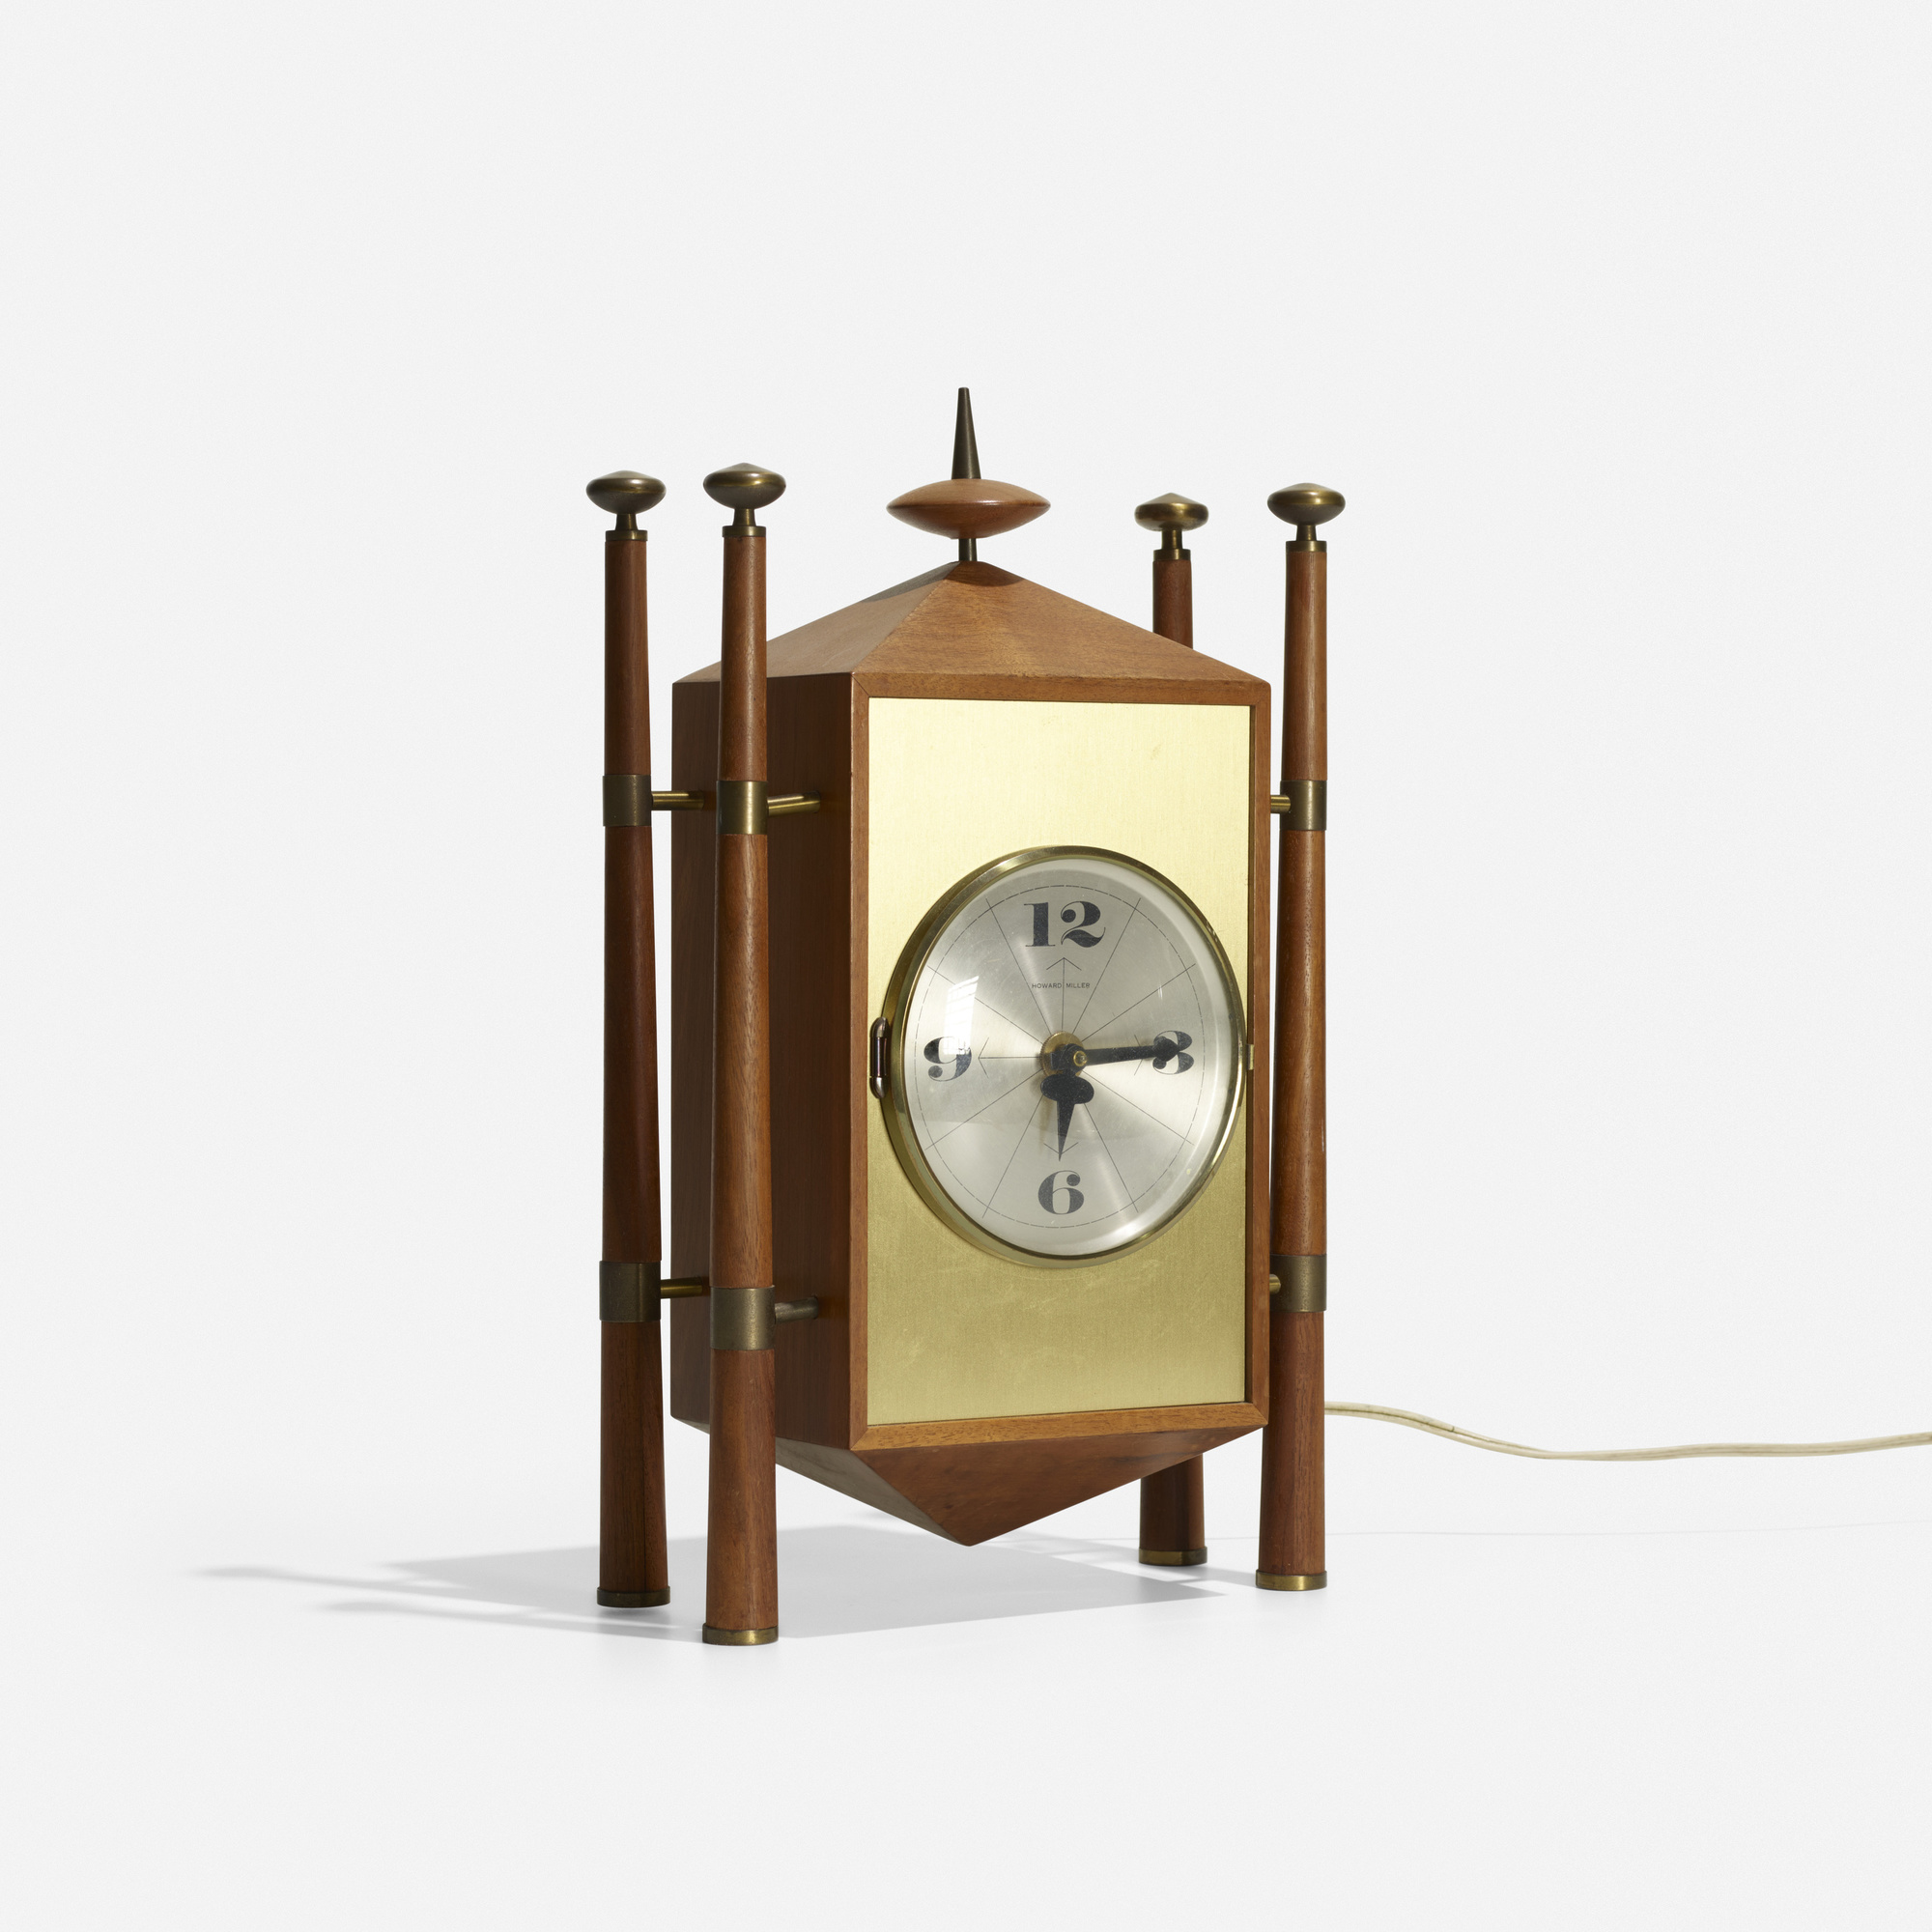 124: George Nelson & Associates / Baroque table clock, model 2255 (1 of 3)